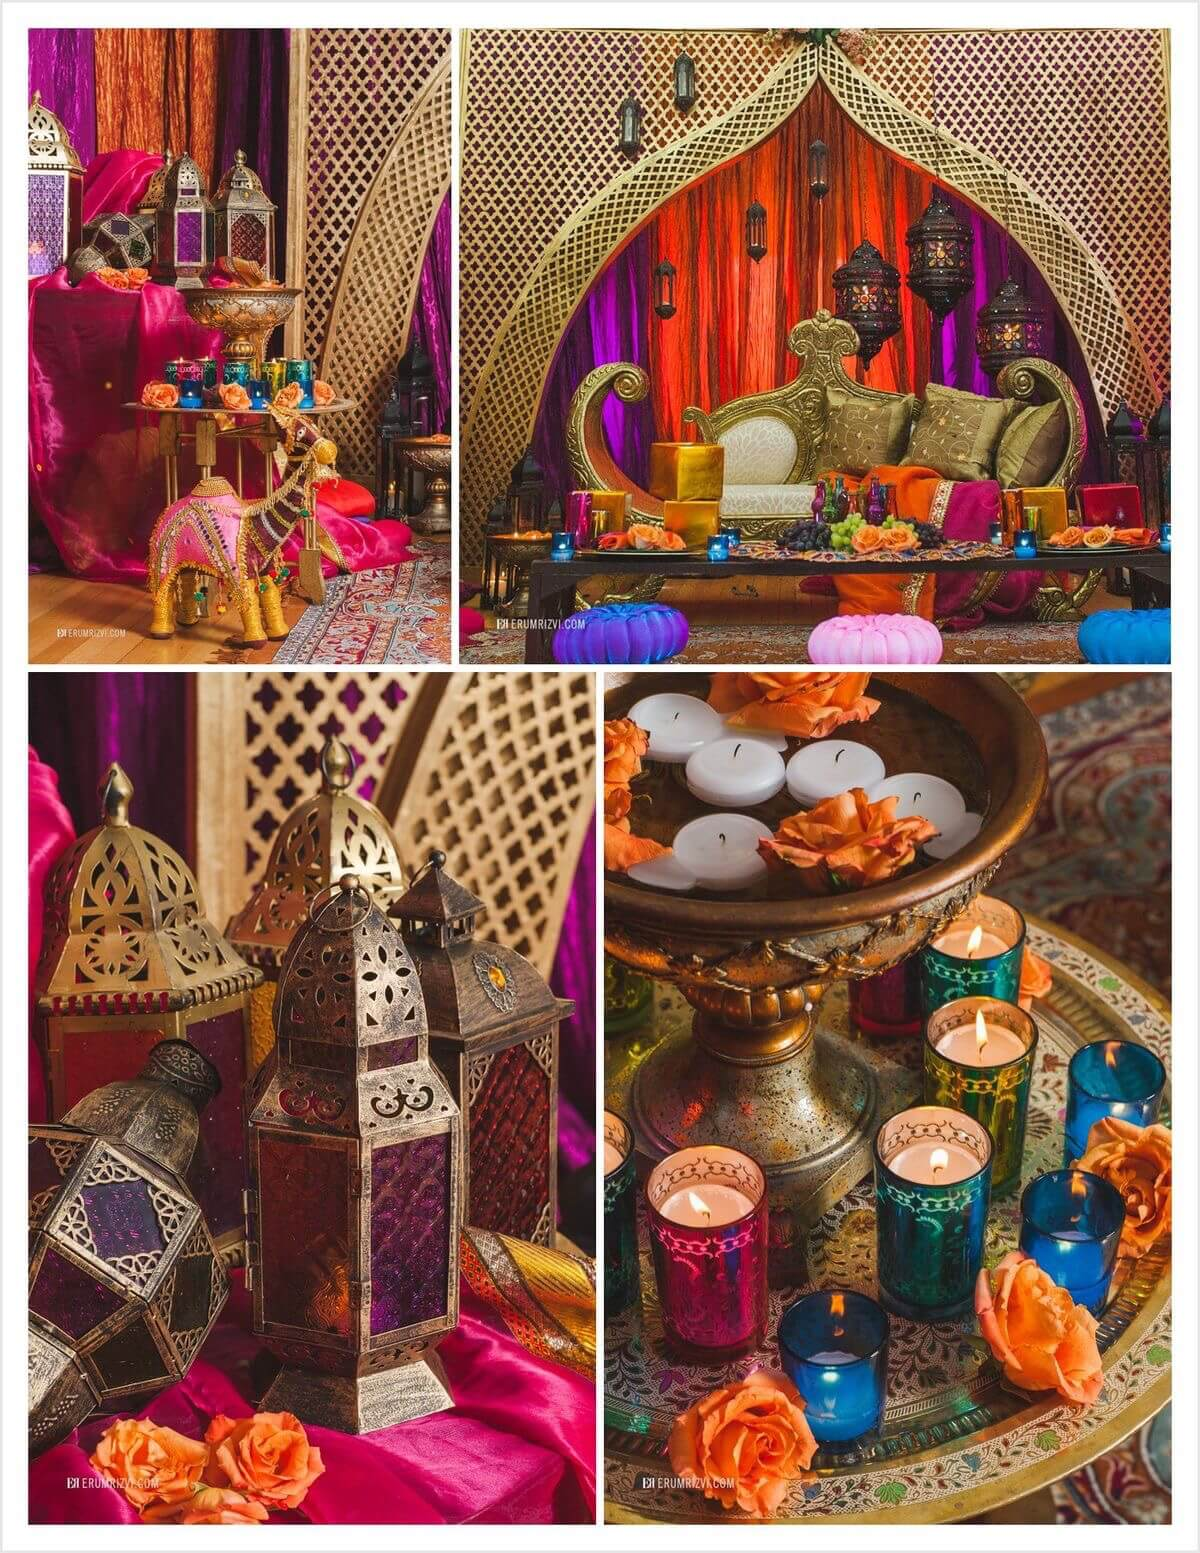 East Indian Boho, Bollywood, Arabian Nights and Moroccan inspired party. Small World gets big with cultural party themes | Halfpint Design